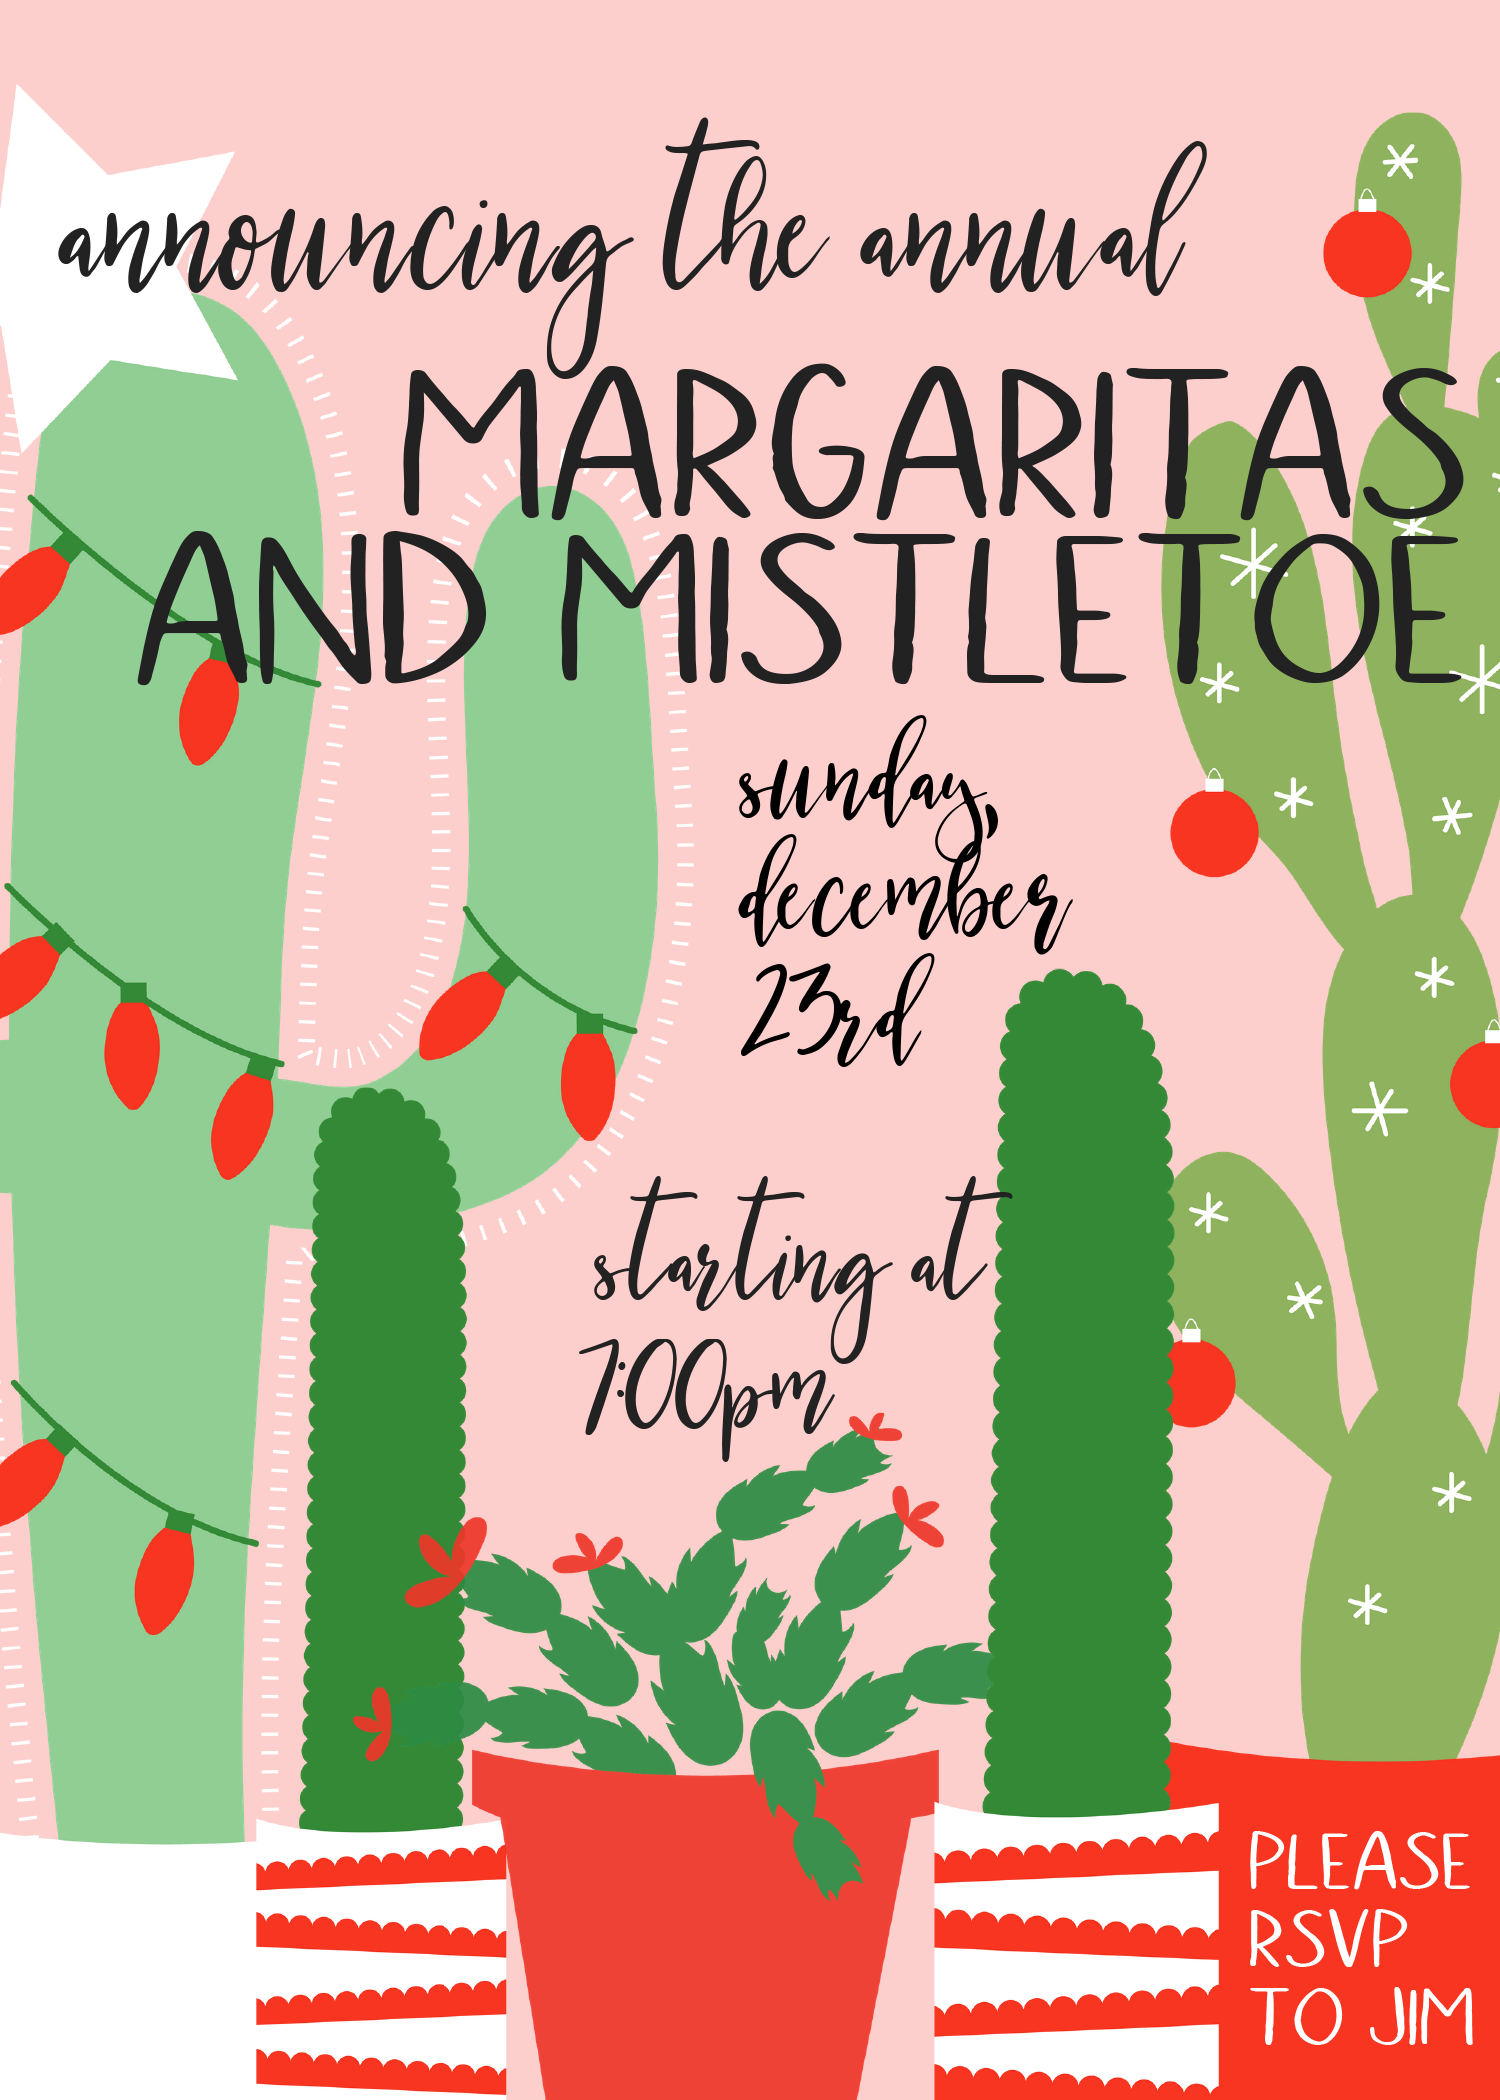 Margs-and-Mistletoe-2018---Send-to-Dad.png